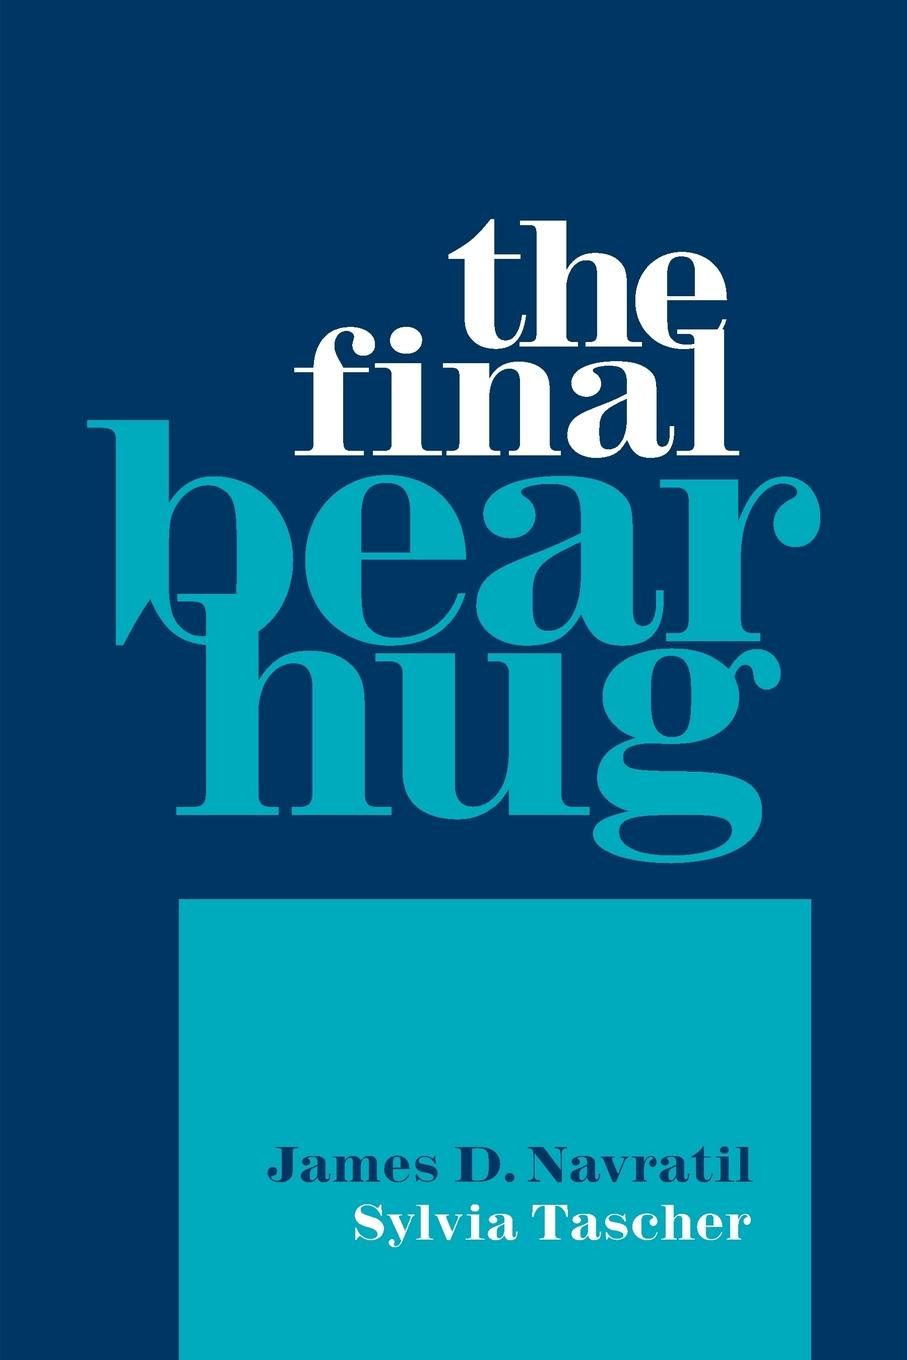 James D. Navratil, Sylvia Tascher The Final Bear Hug